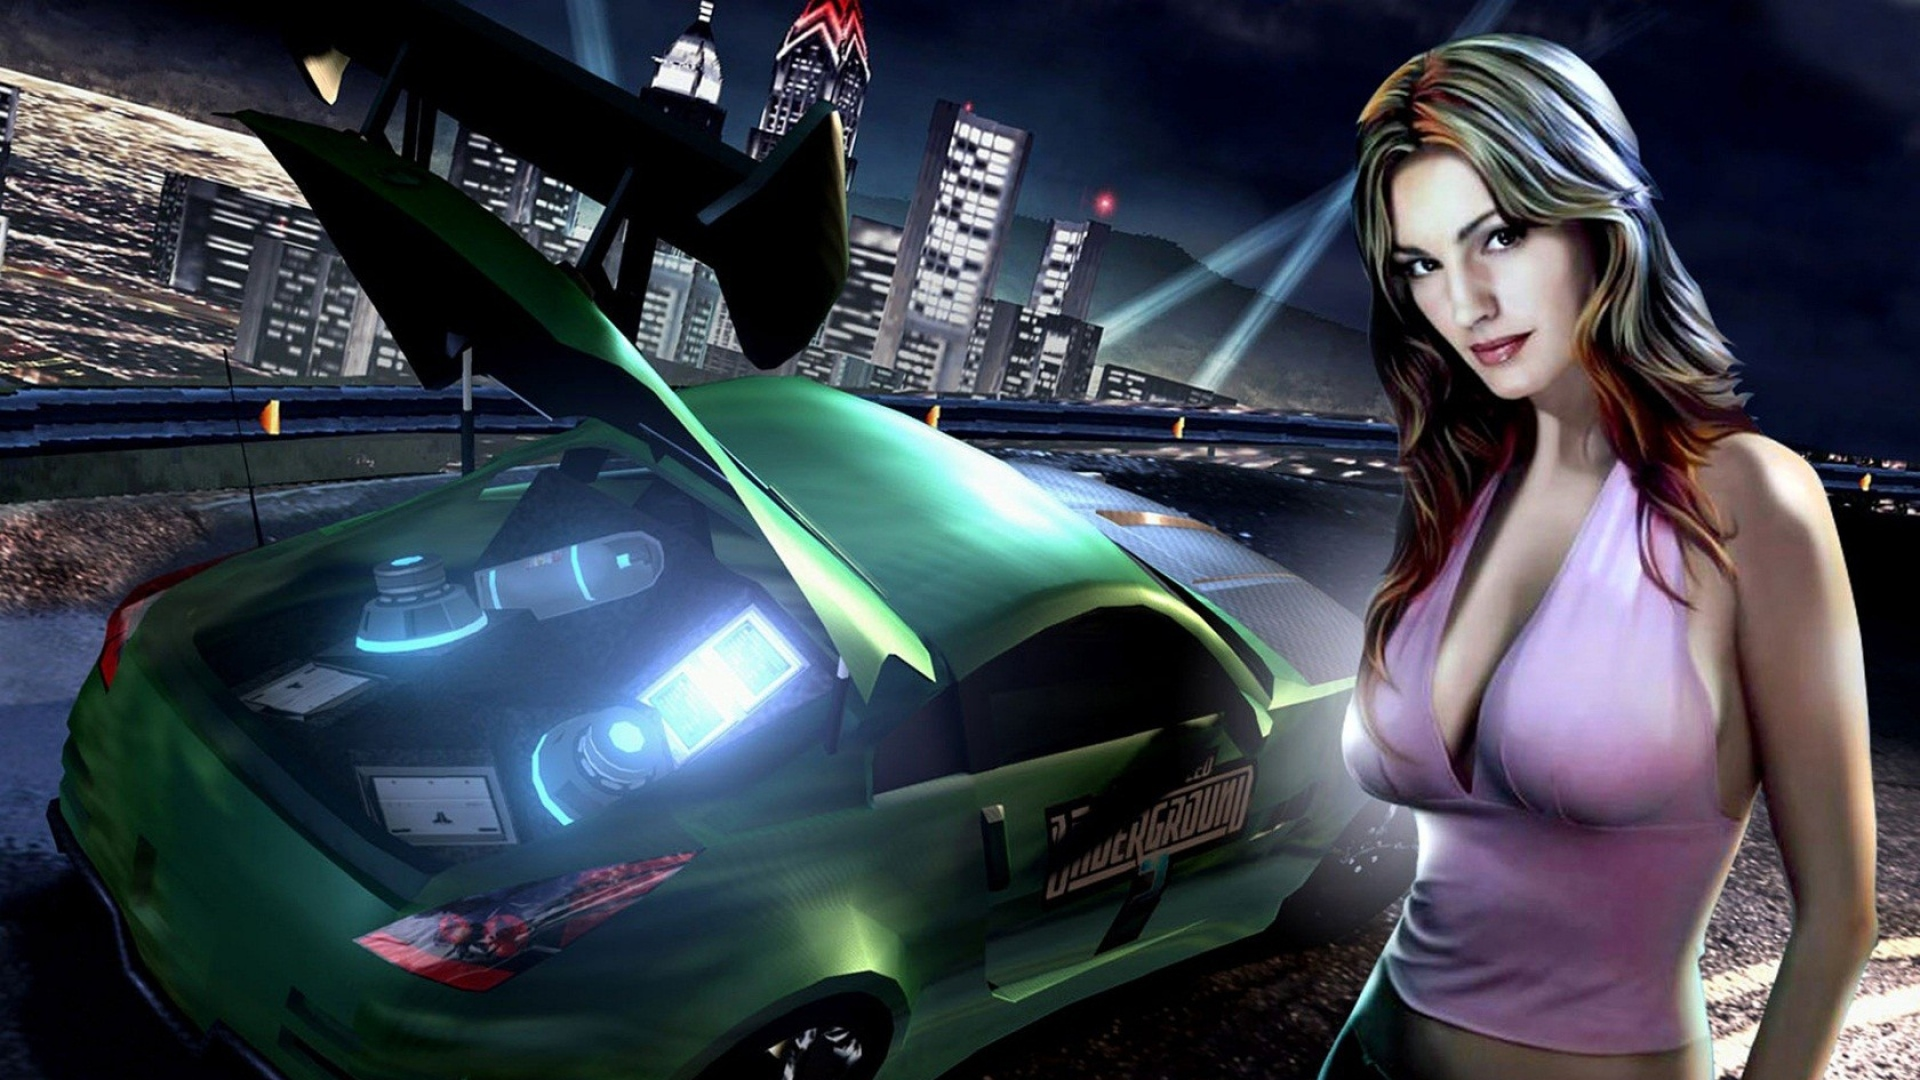 Download Wallpaper 1920x1080 Nfs Need For Speed Girl